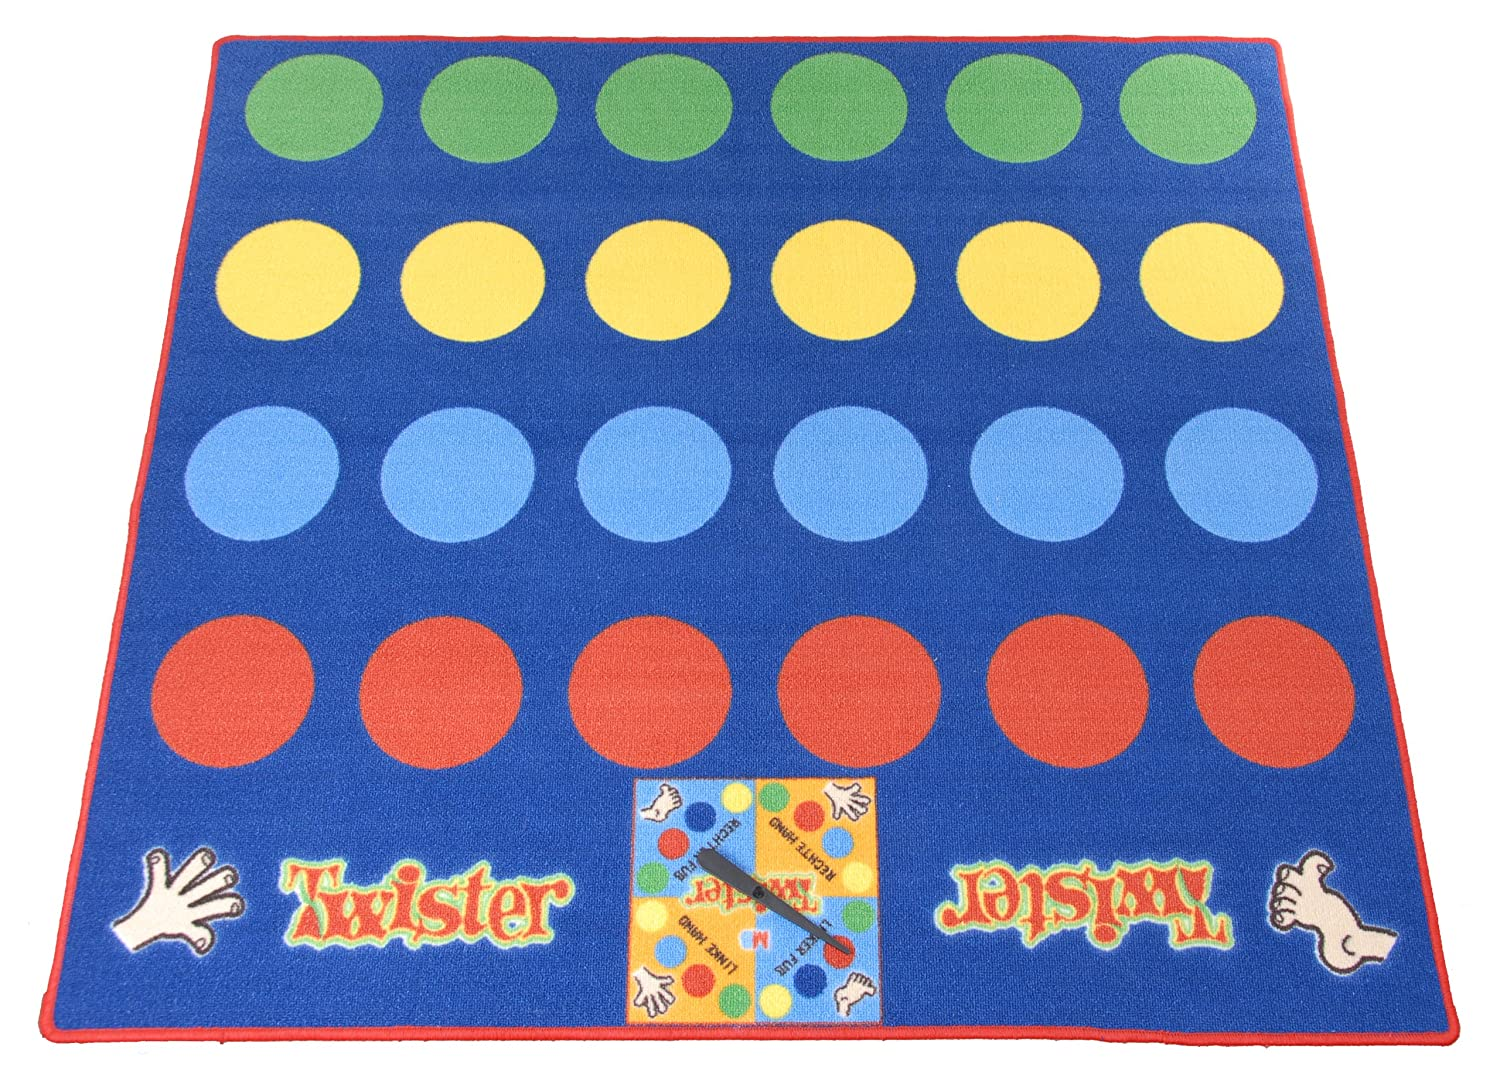 Brightlife Bv Twister Carpet Game Amazon Co Uk Toys Games